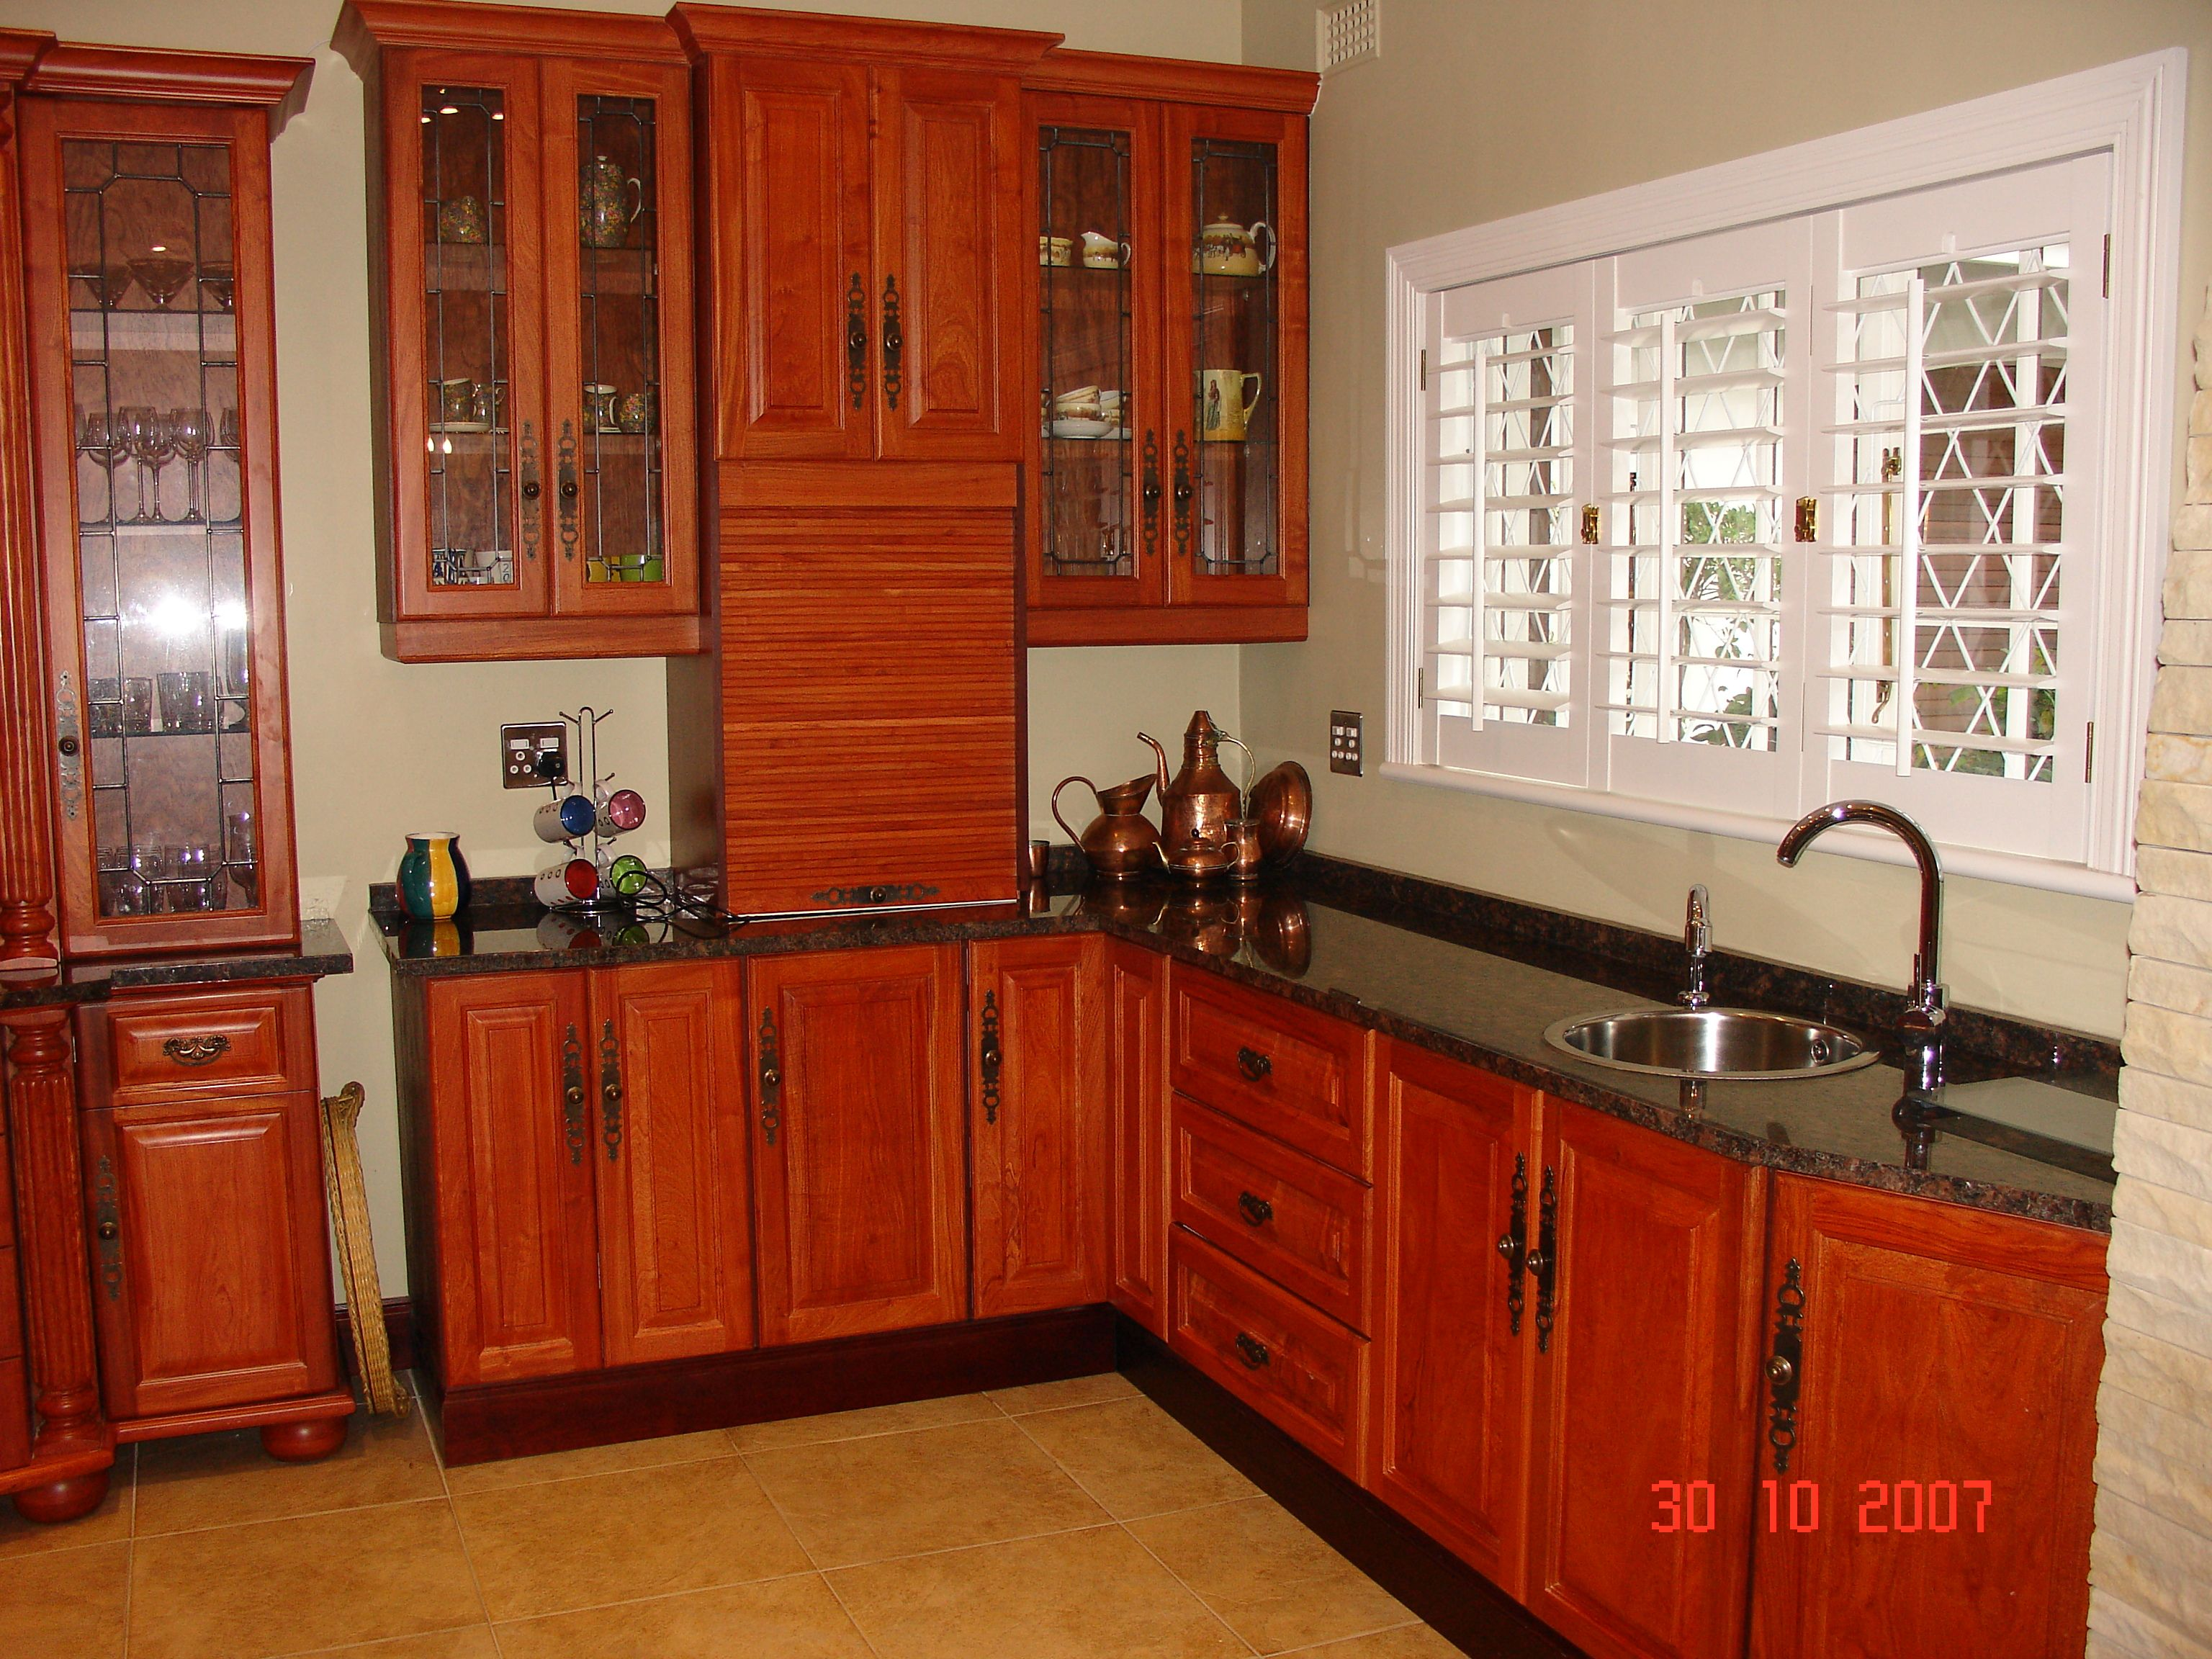 Rosewood Cupboards Cabinets Rosewood Kitchen Kitchen Cabinets For Sale Kitchen Cabinets